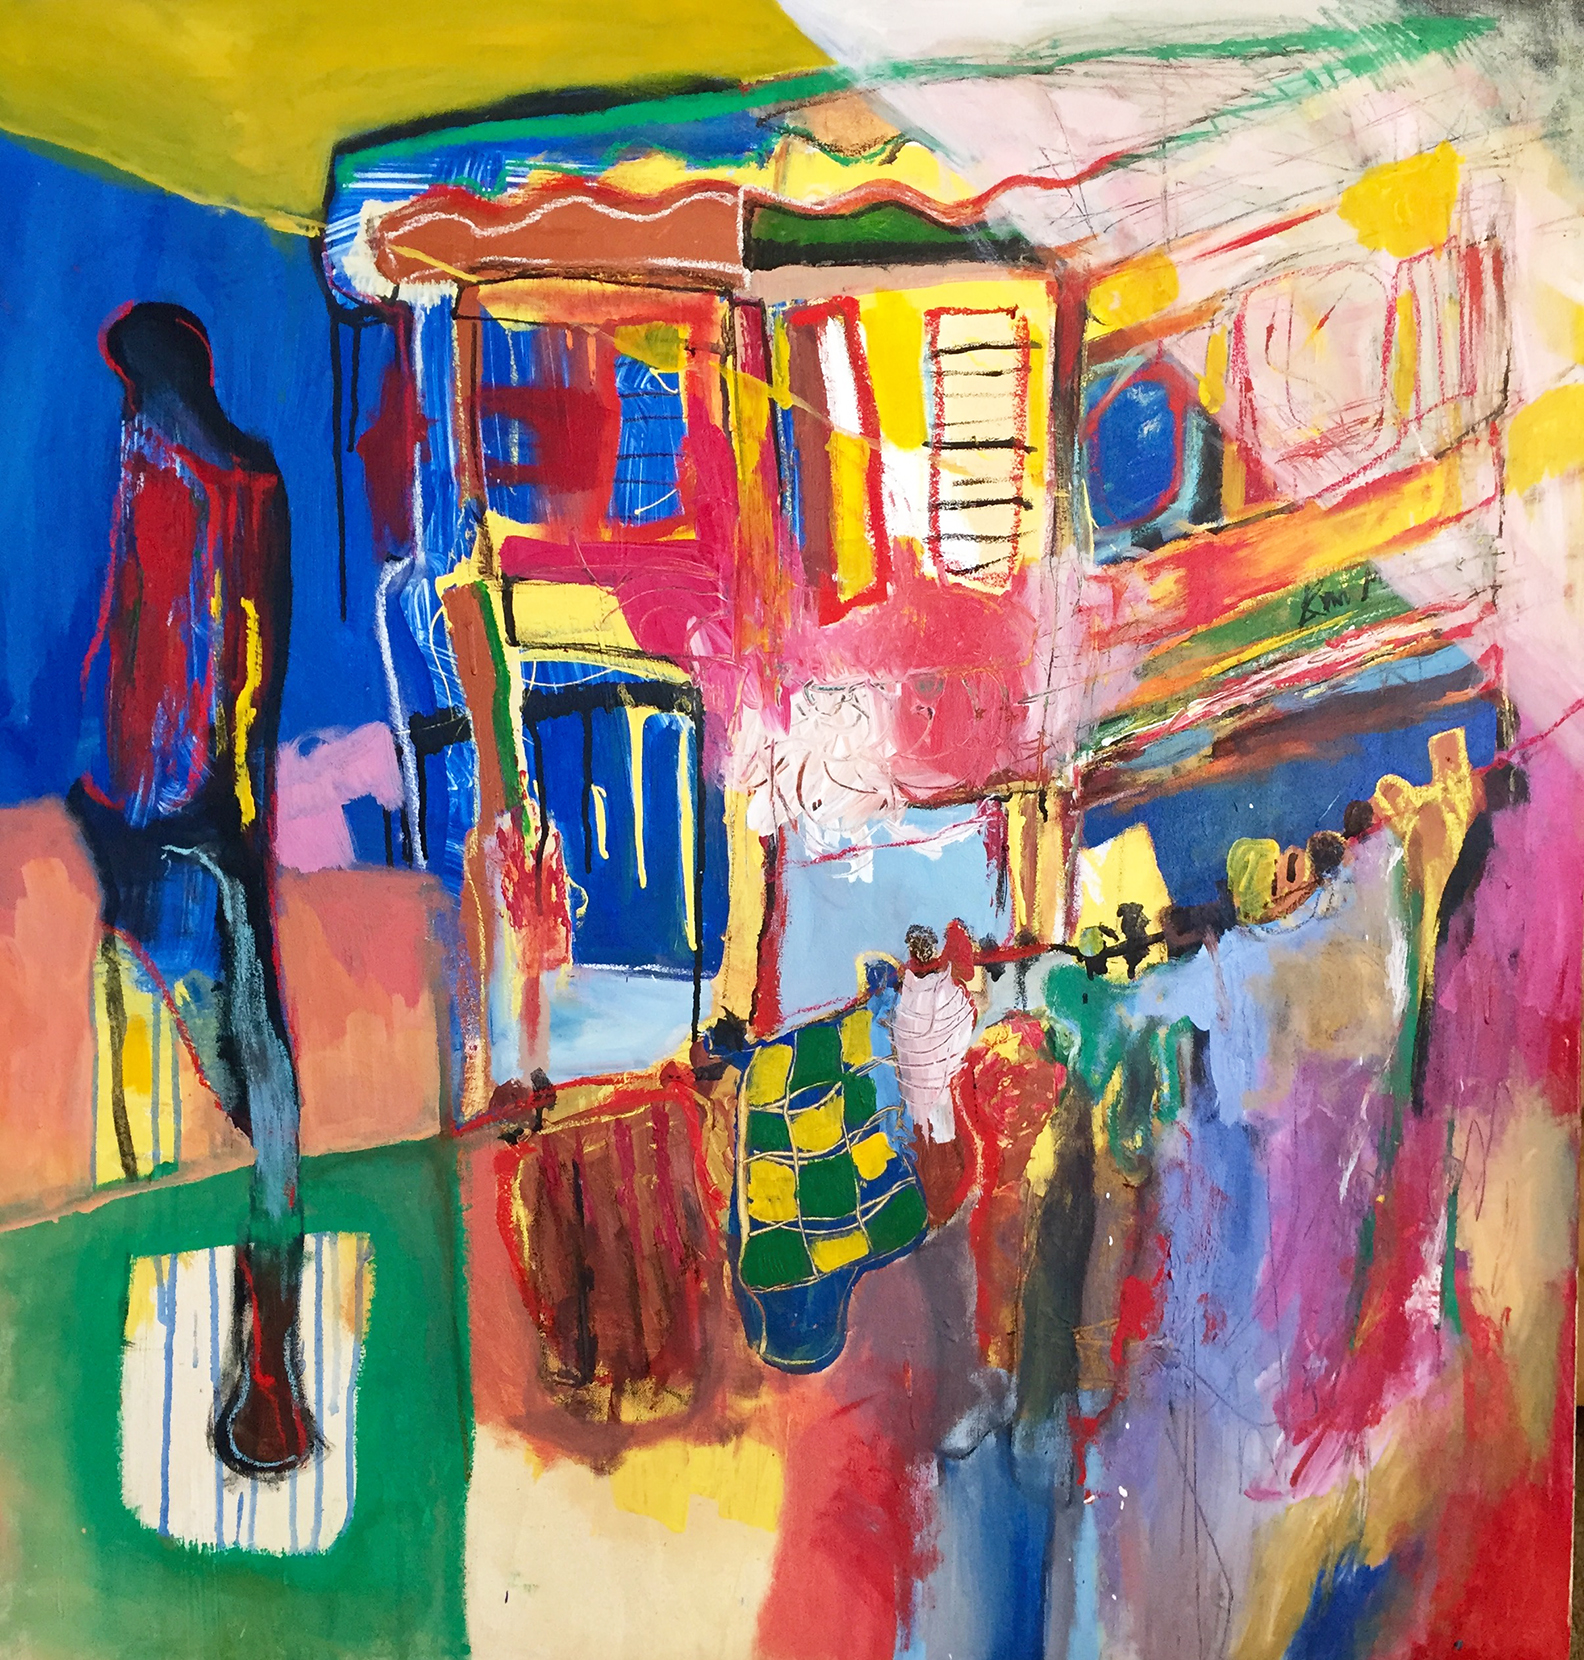 Through the Shutters - Oil and Acrylic on canvas - Available for Purchase - email info@annmcferran.com for inquries